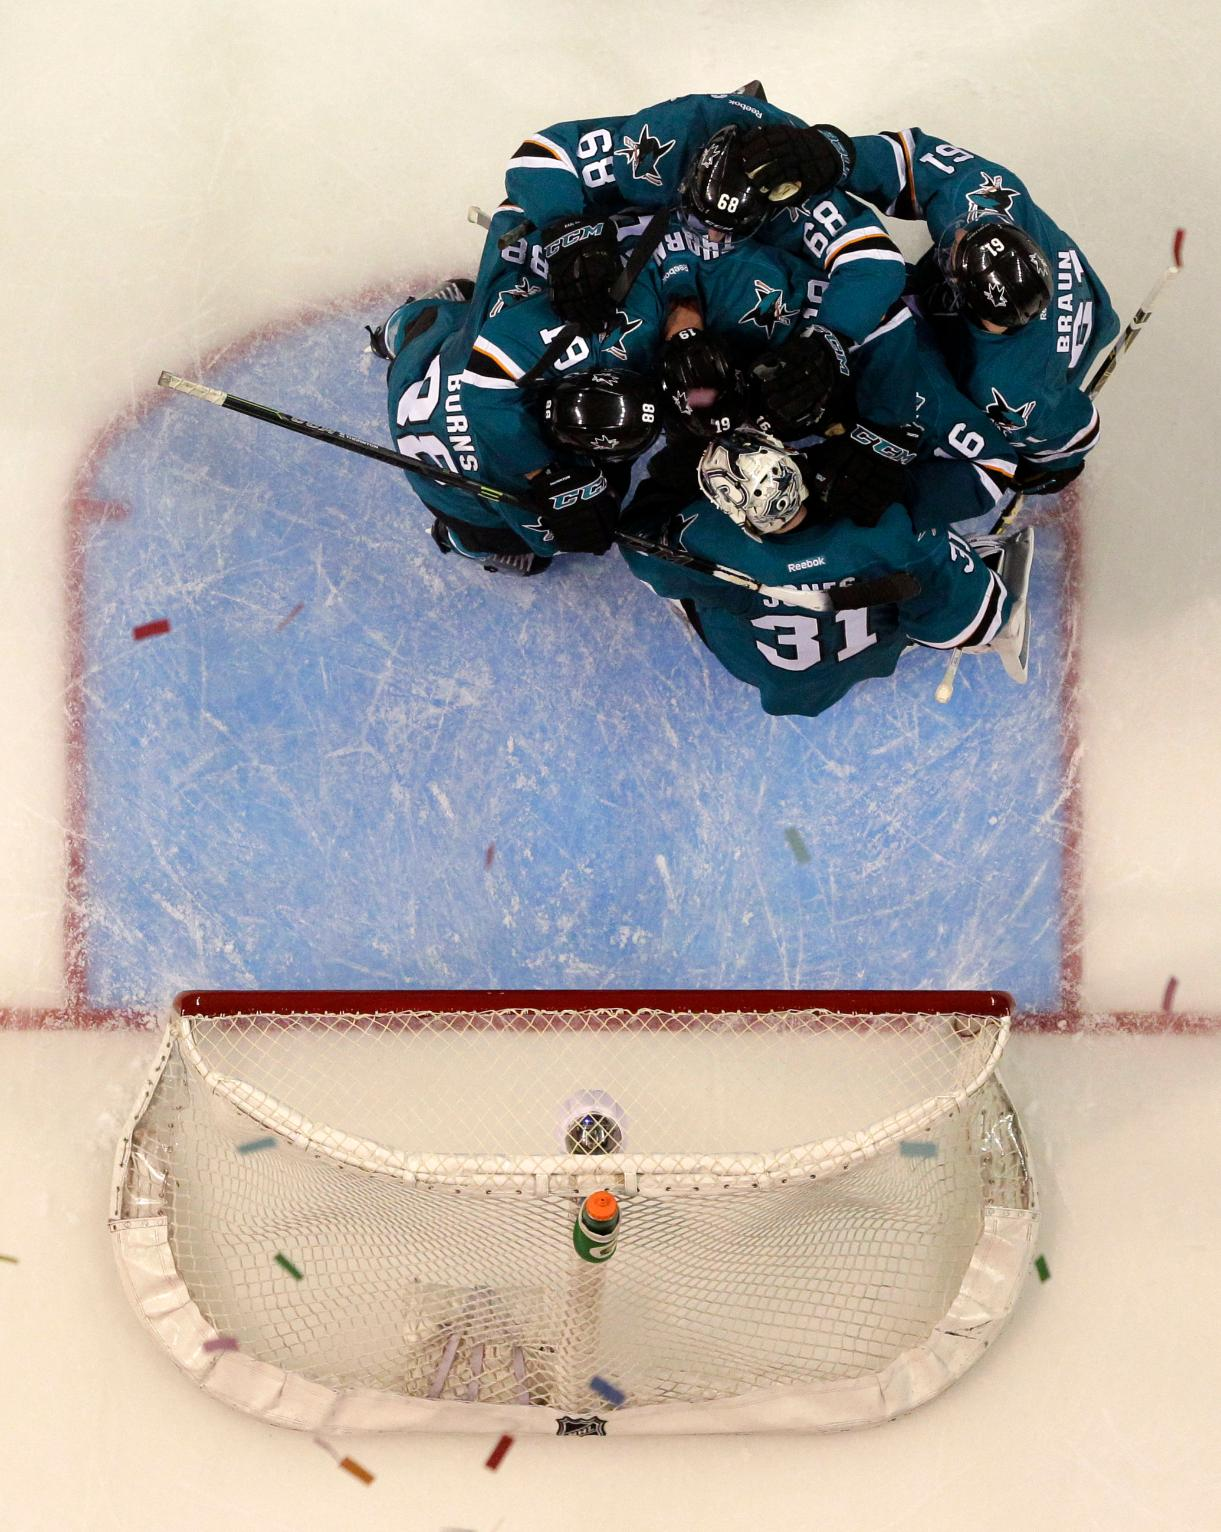 St. Louis and San Jose face off in Western Conference finals   Sports News   US News